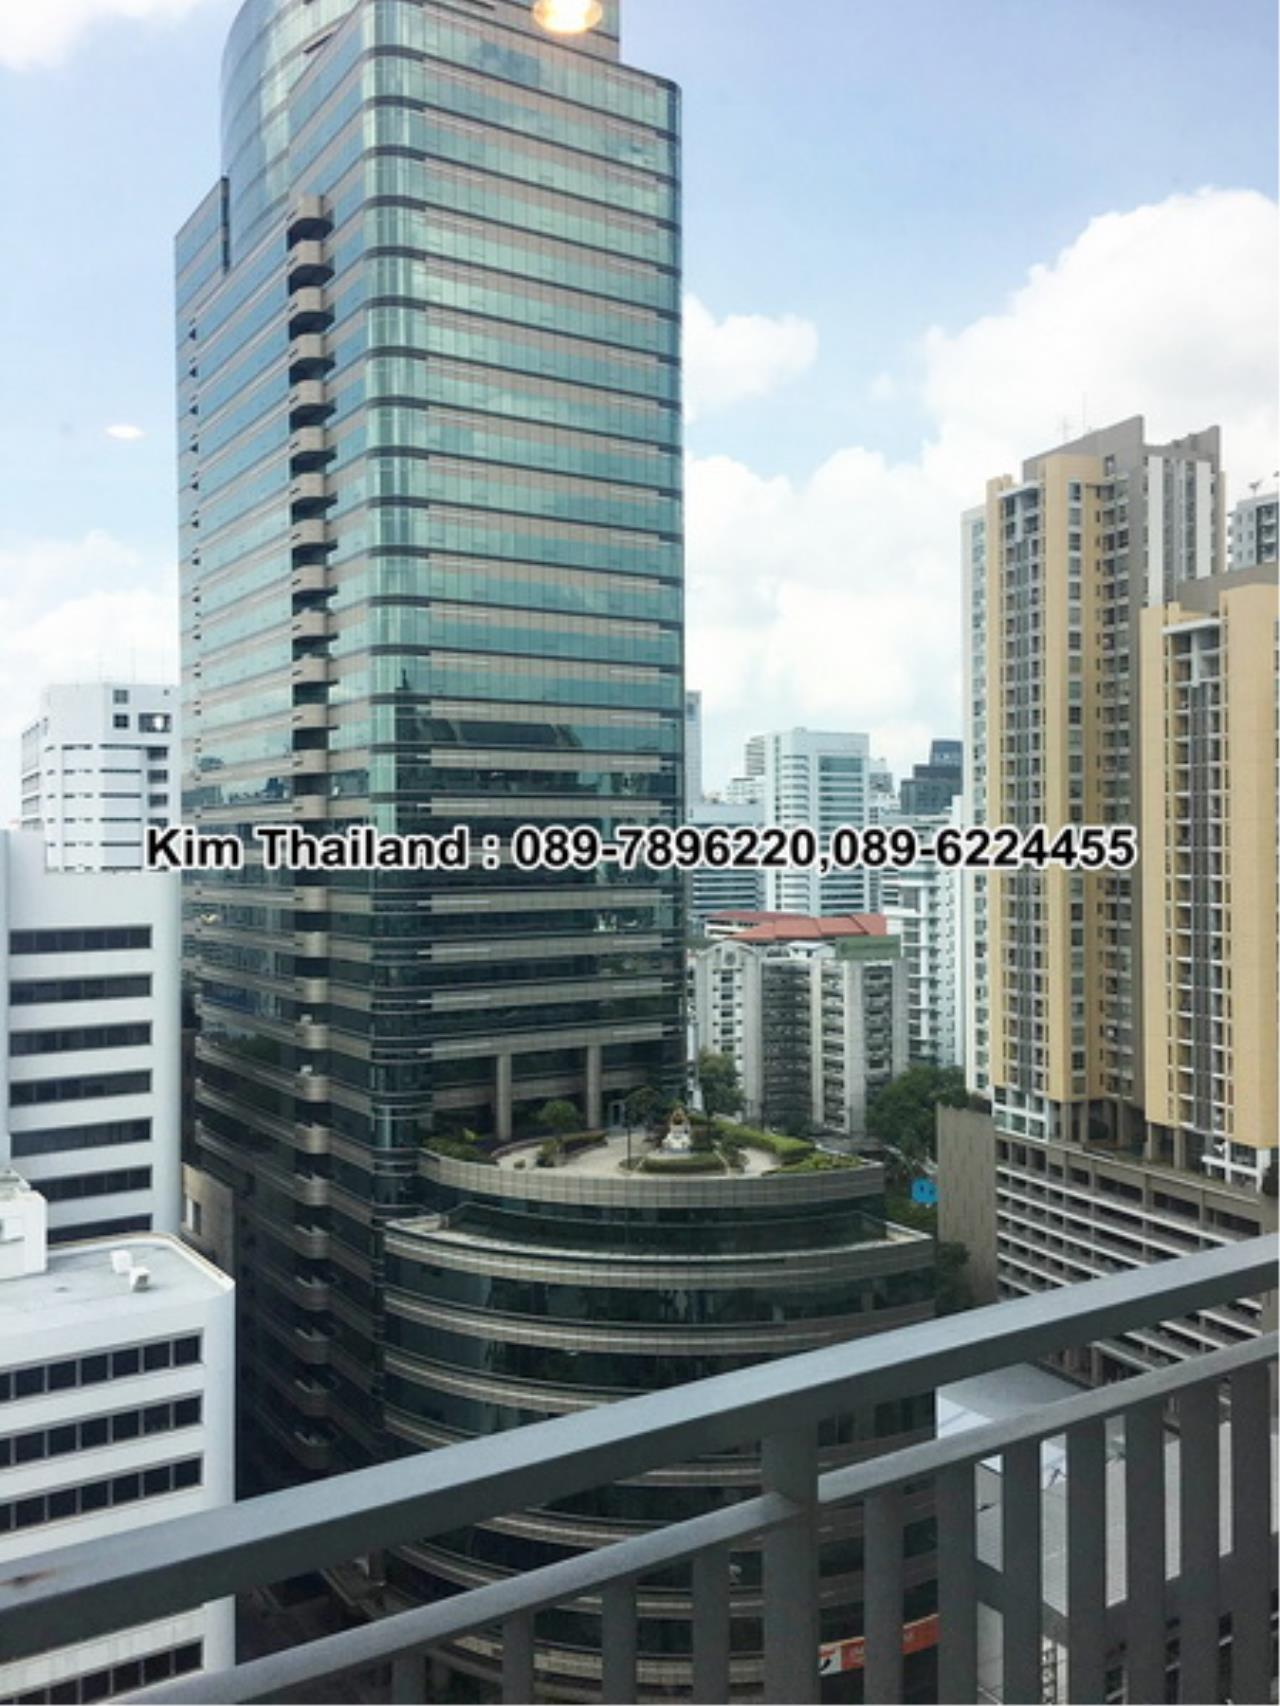 BKKcondorental Agency's For rent, Condo The Parkland Grand Asoke-Petchaburi., Area 35 sq.m. 1 bedroom. Rental 16,500 THB per month. 1